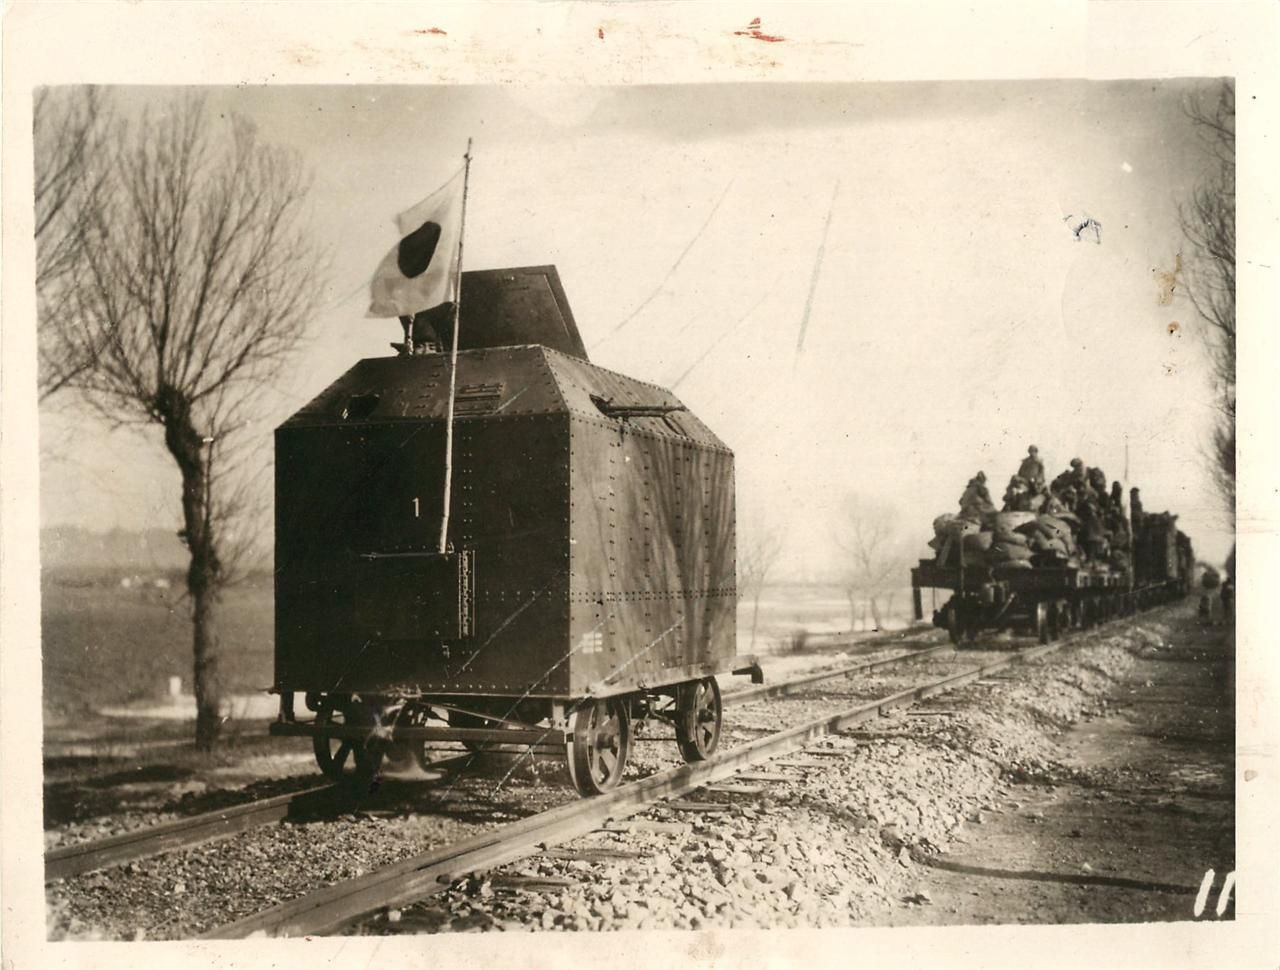 1932 Japanese armored train car seen following troops and